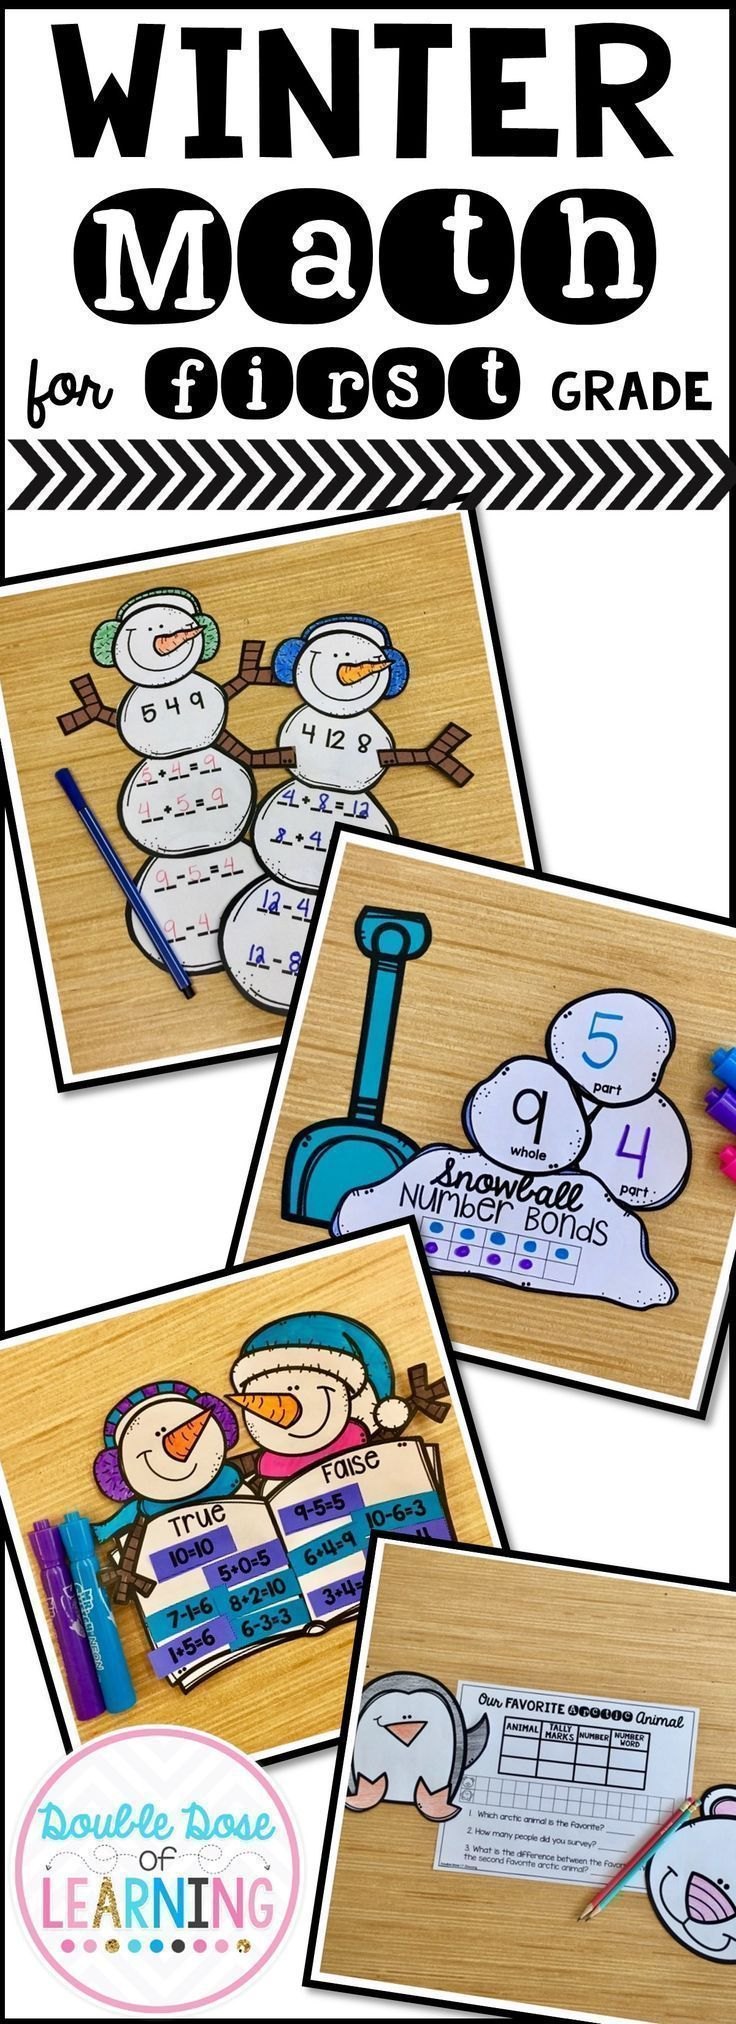 Enhance your first grade students ability to demonstrate operations and algebraic thinking skills during the winter season by incorporating snowman/snow interactive extensions to your lessons with craftivities or math art. Skills include fact families, graphing, ten frame number bonds and true or false equations. The concepts you will find within this resource are aligned to the common core standards for first grade.